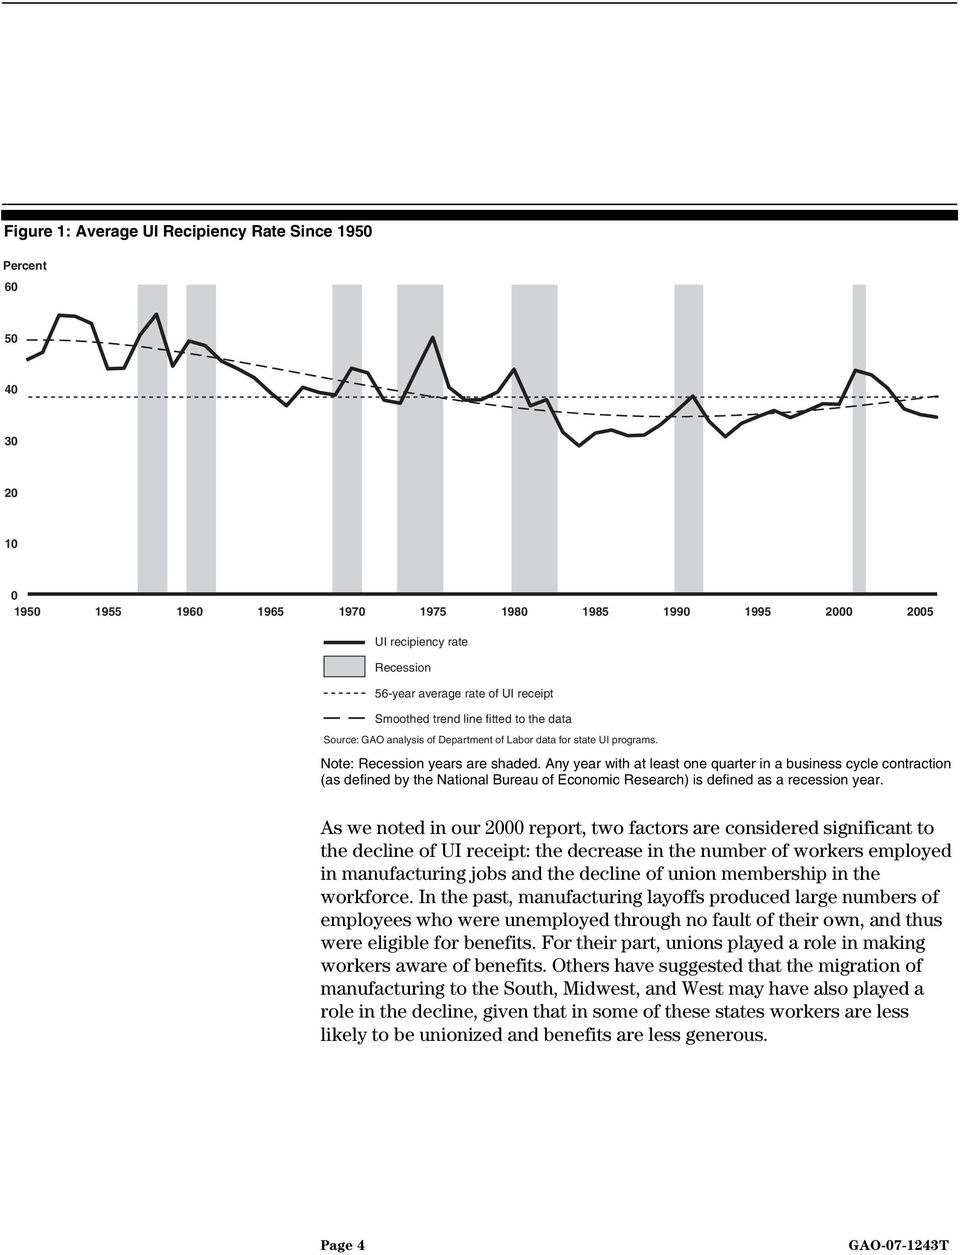 Any year with at least one quarter in a business cycle contraction (as defined by the National Bureau of Economic Research) is defined as a recession year.